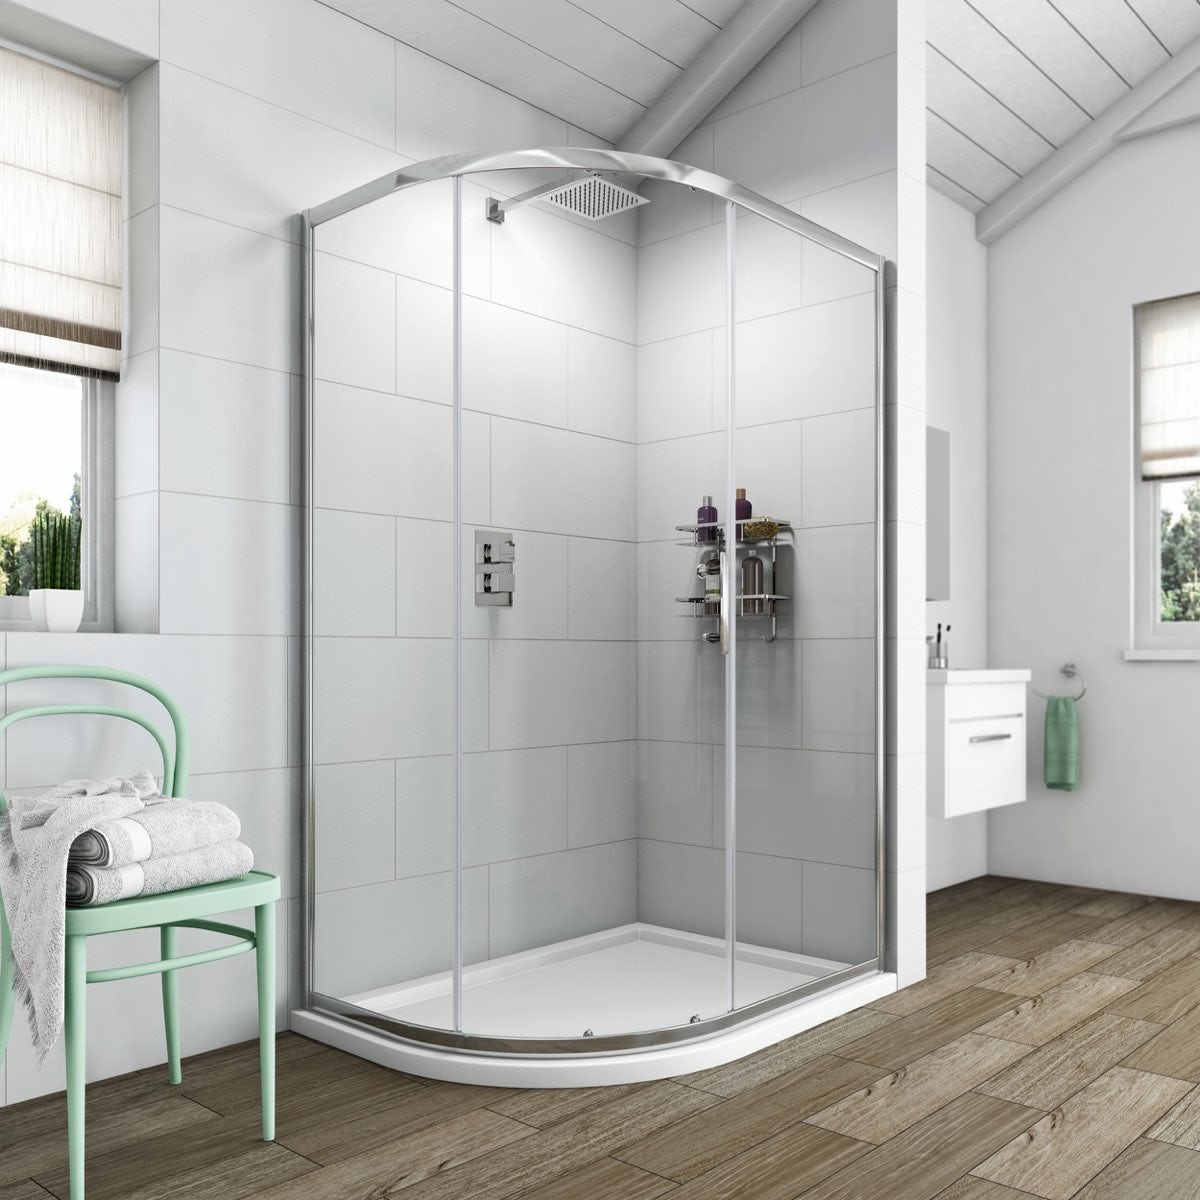 Clarity 6mm one door offset quadrant 1200 x 900 with for Small baths 1200